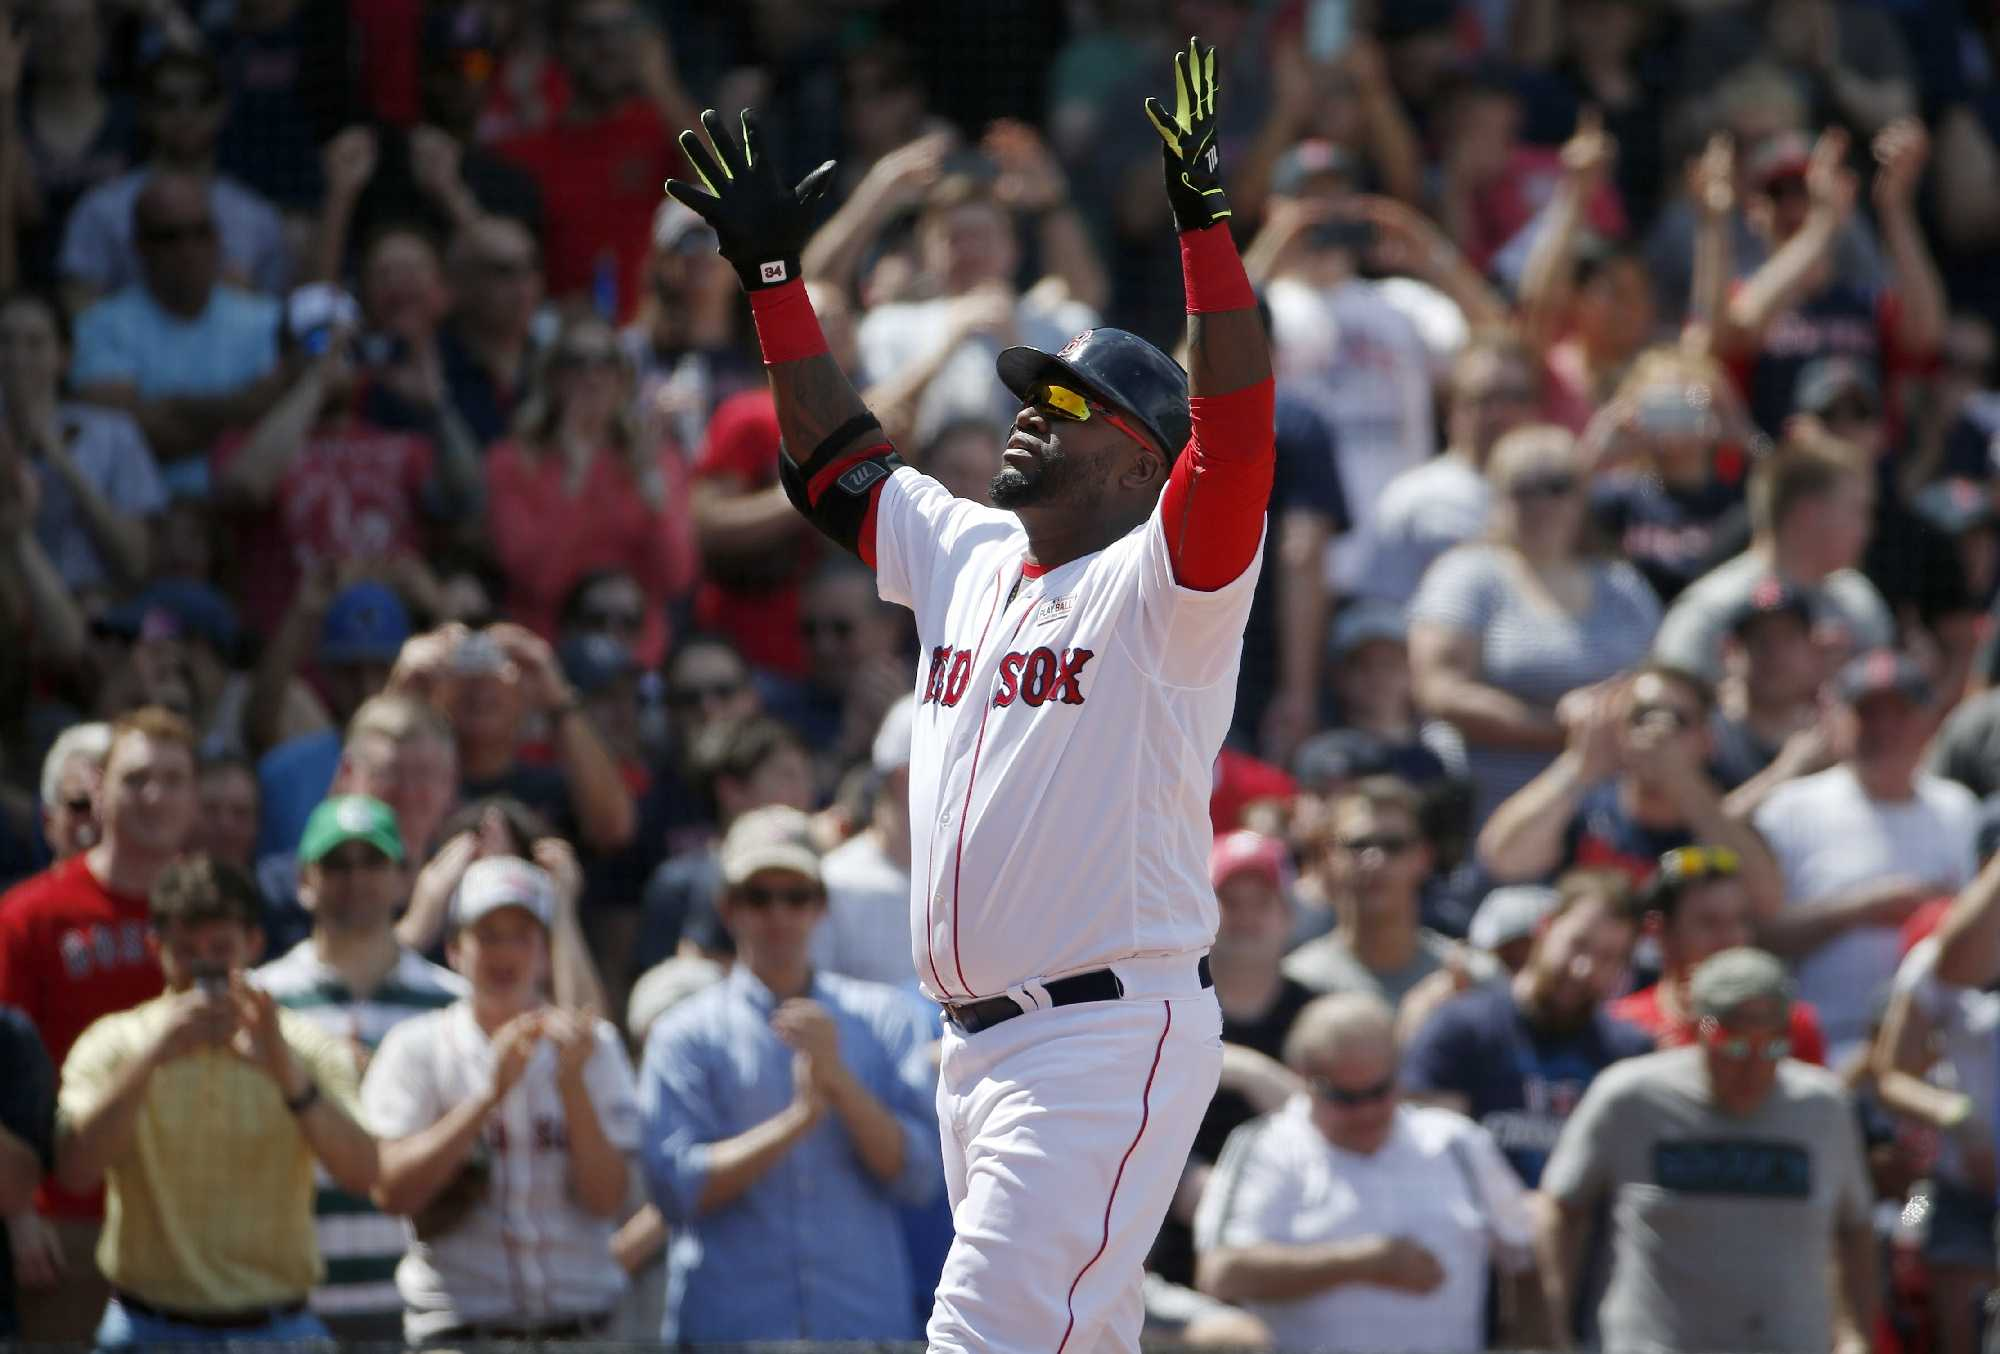 Boston renames street after retired Red Sox player Ortiz